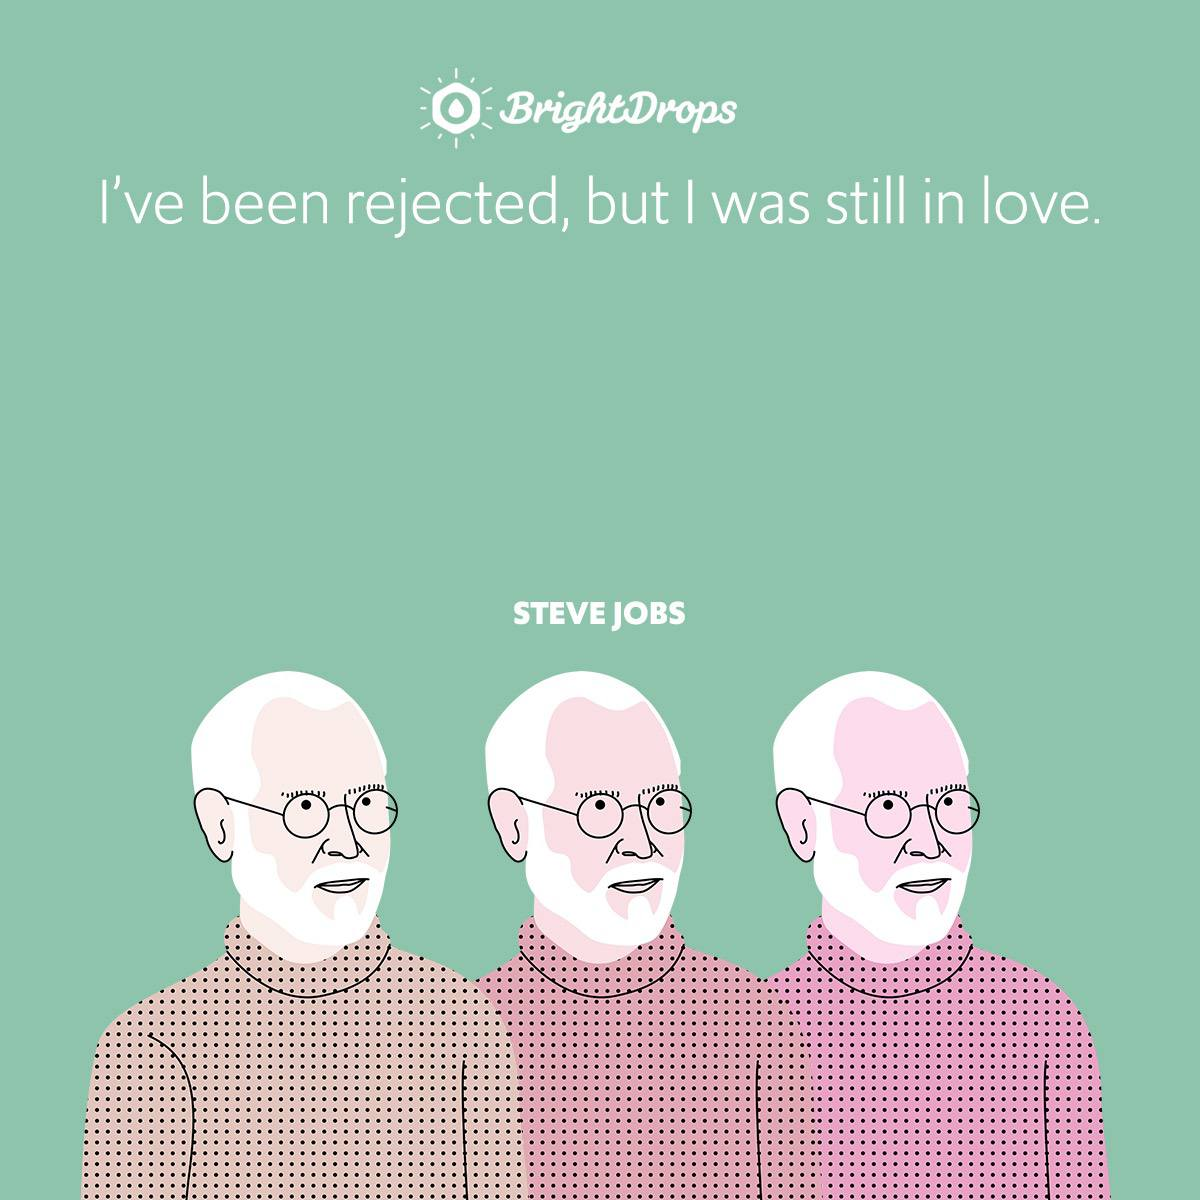 I've been rejected, but I was still in love.